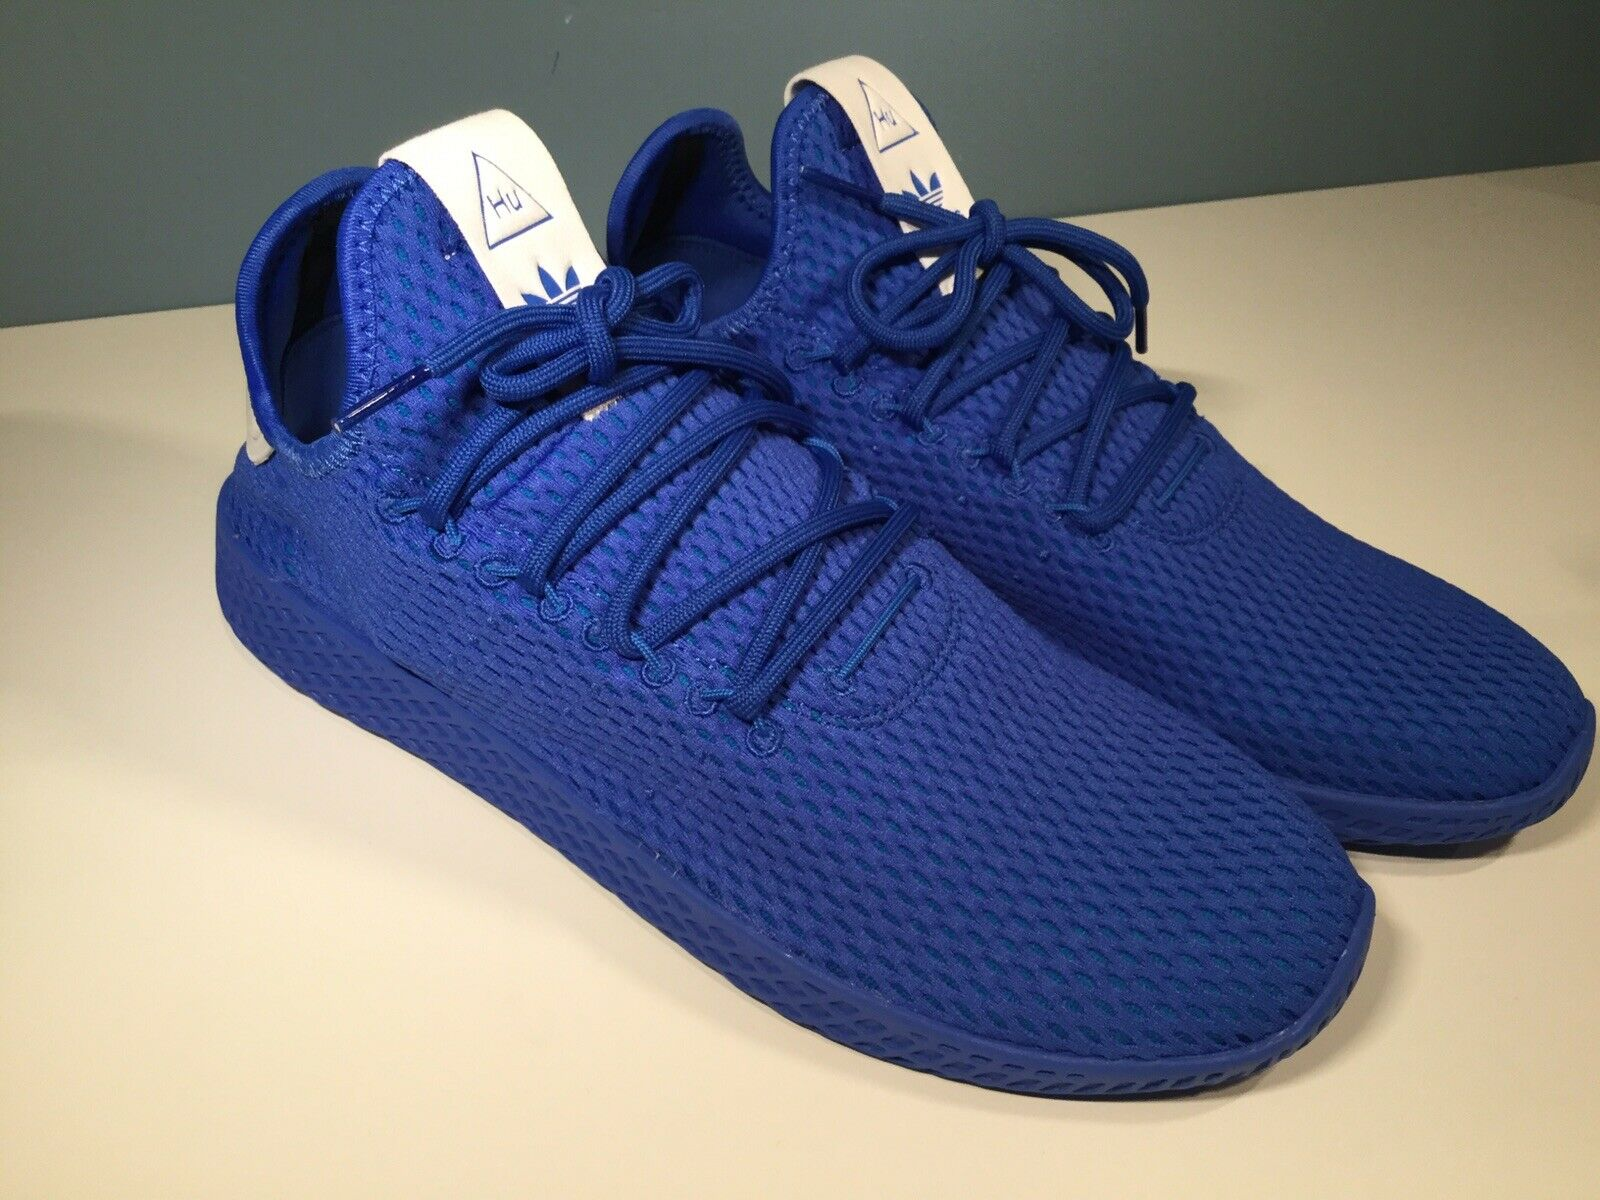 Adidas Pharrell Williams Tennis Hu shoes Men's bluee CP9766 Size 8.5